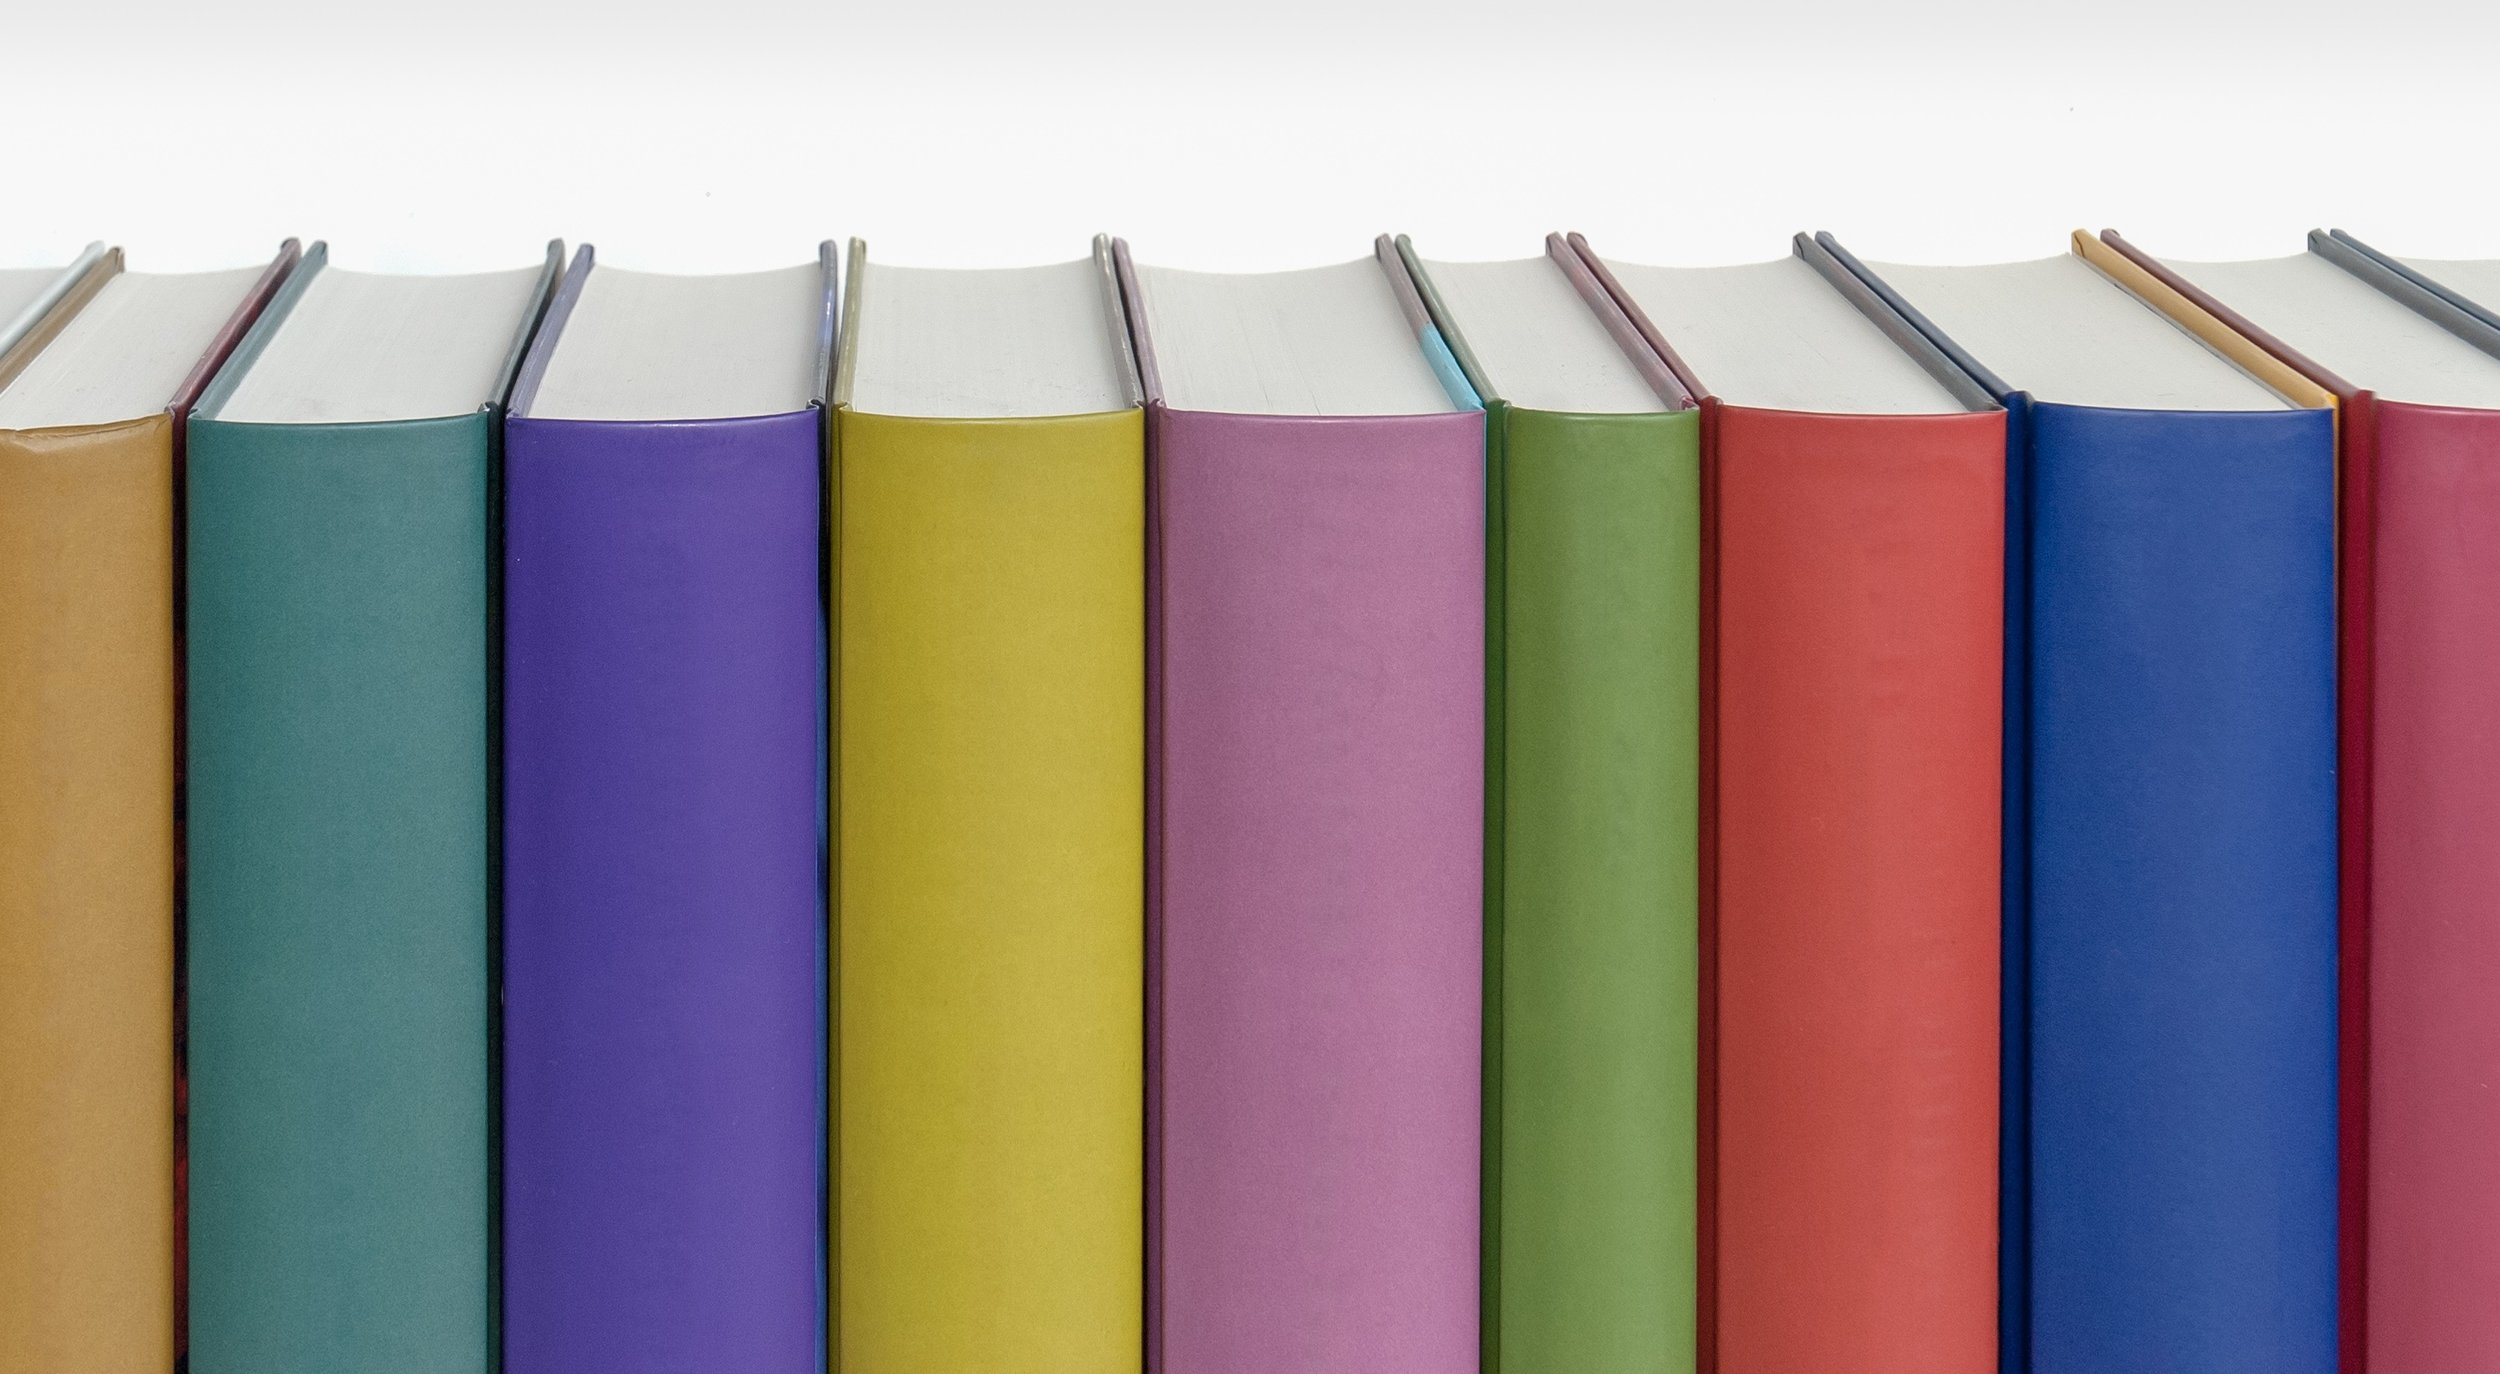 books-spine-colors-pastel-159828.jpeg